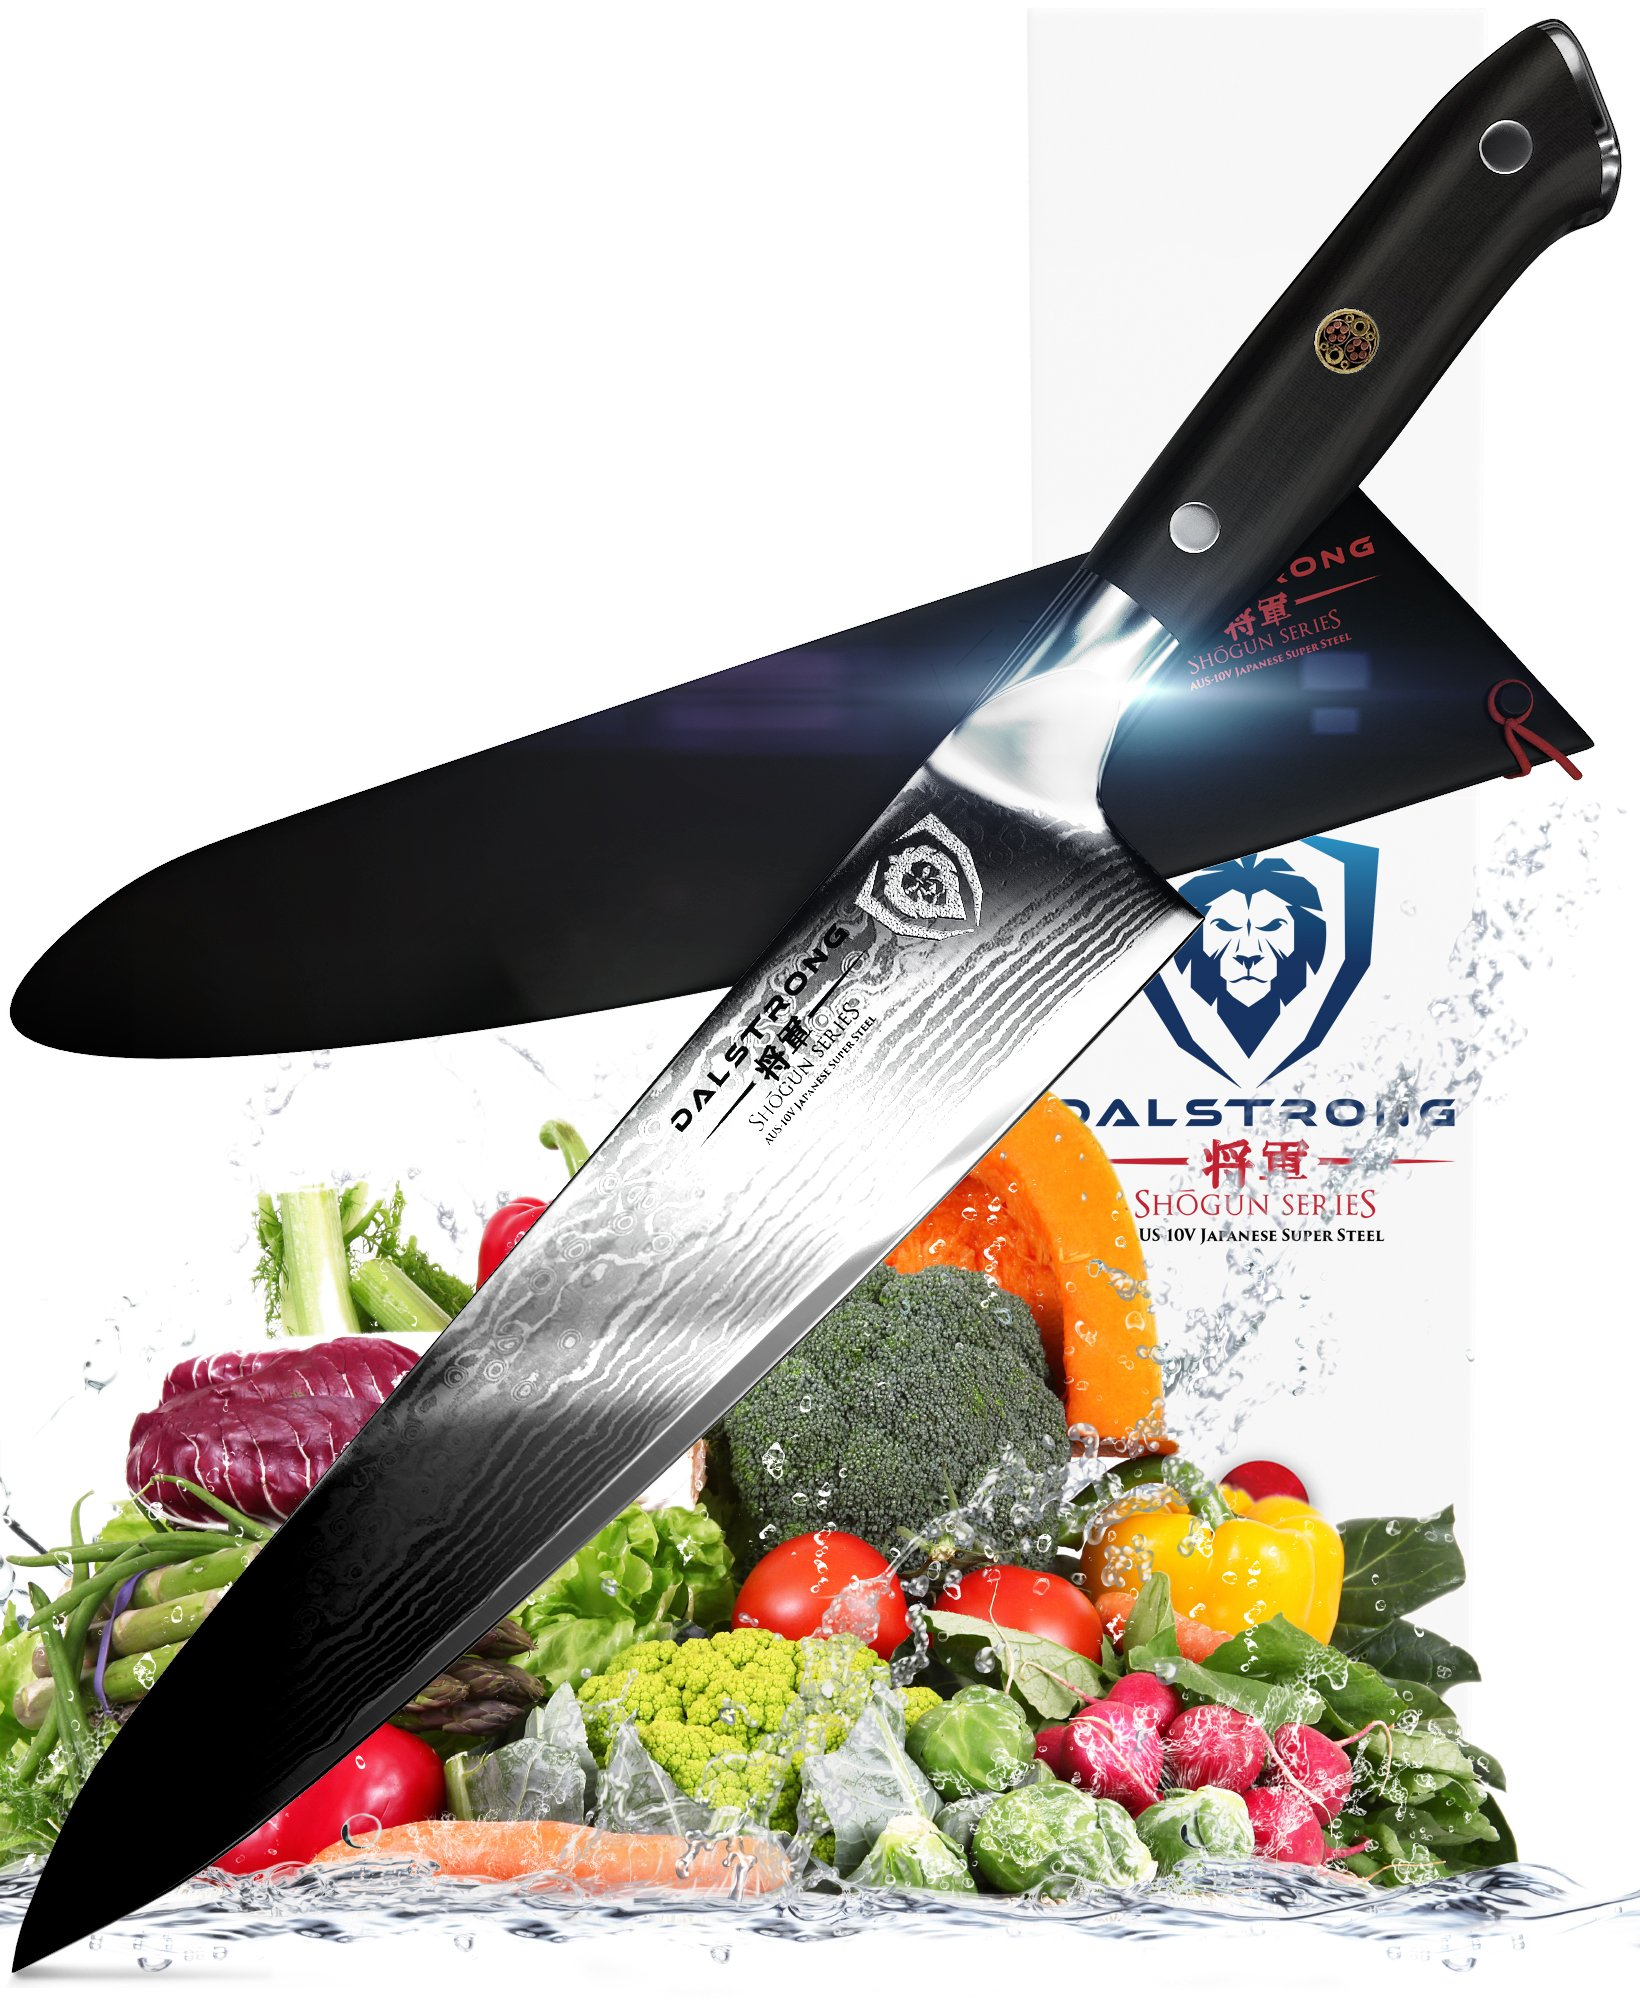 DALSTRONG Chef Knife - Shogun Series Gyuto - VG10 - 9.5'' (240mm) by Dalstrong